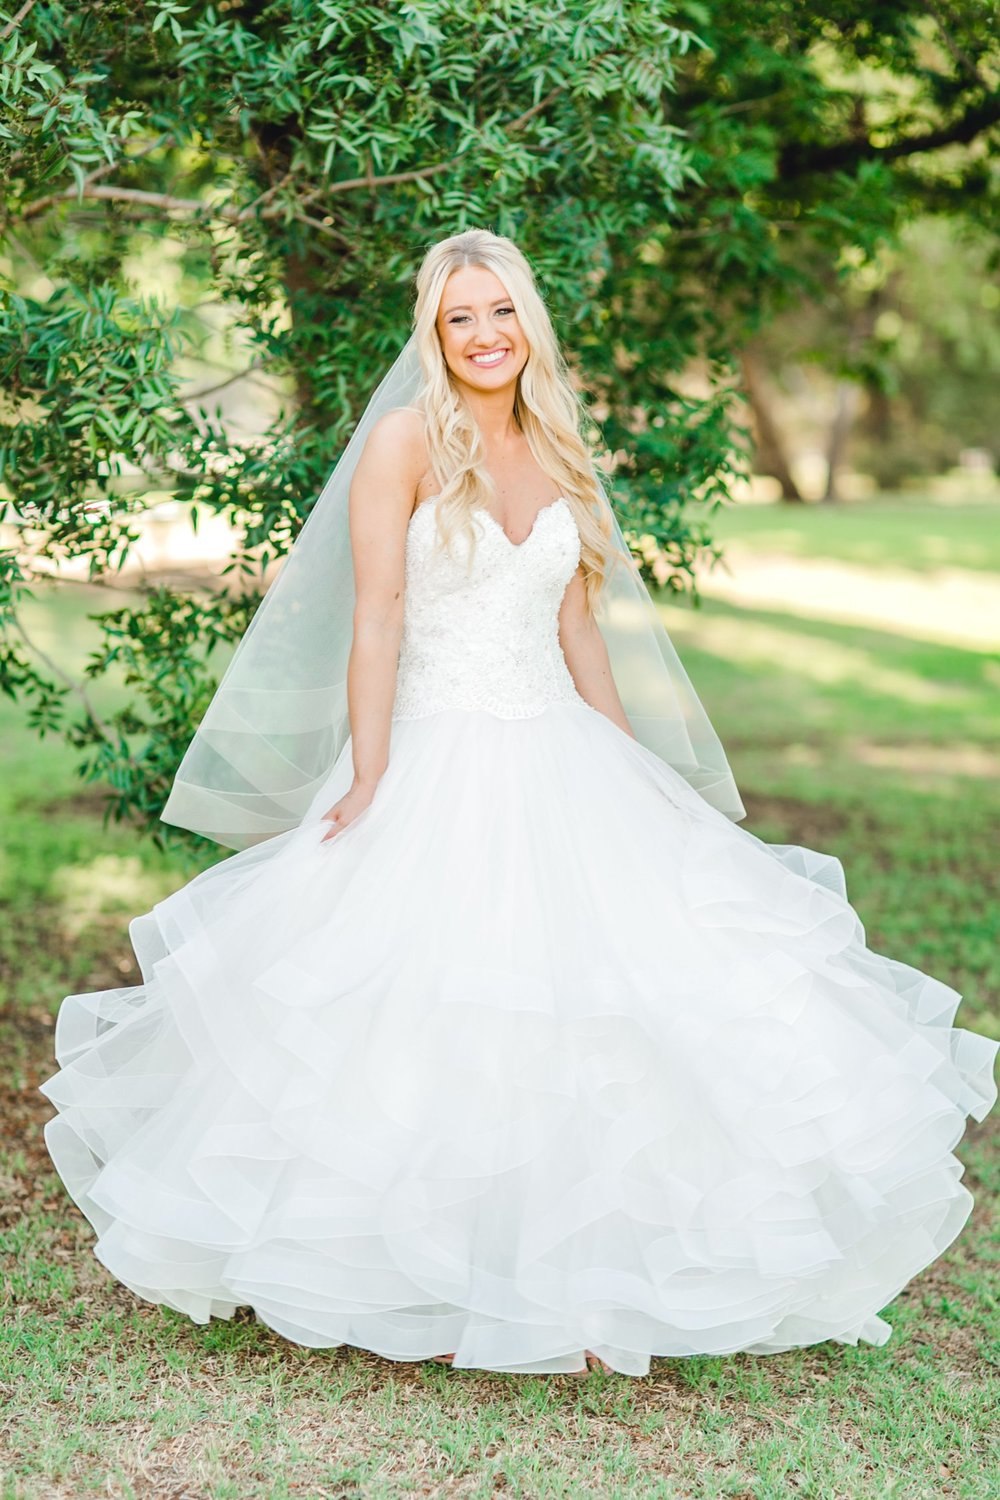 MADI_WRIGHT_BRIDALS_ALLEEJ_LUBBOCK_PHOTOGRAPHER0008.jpg